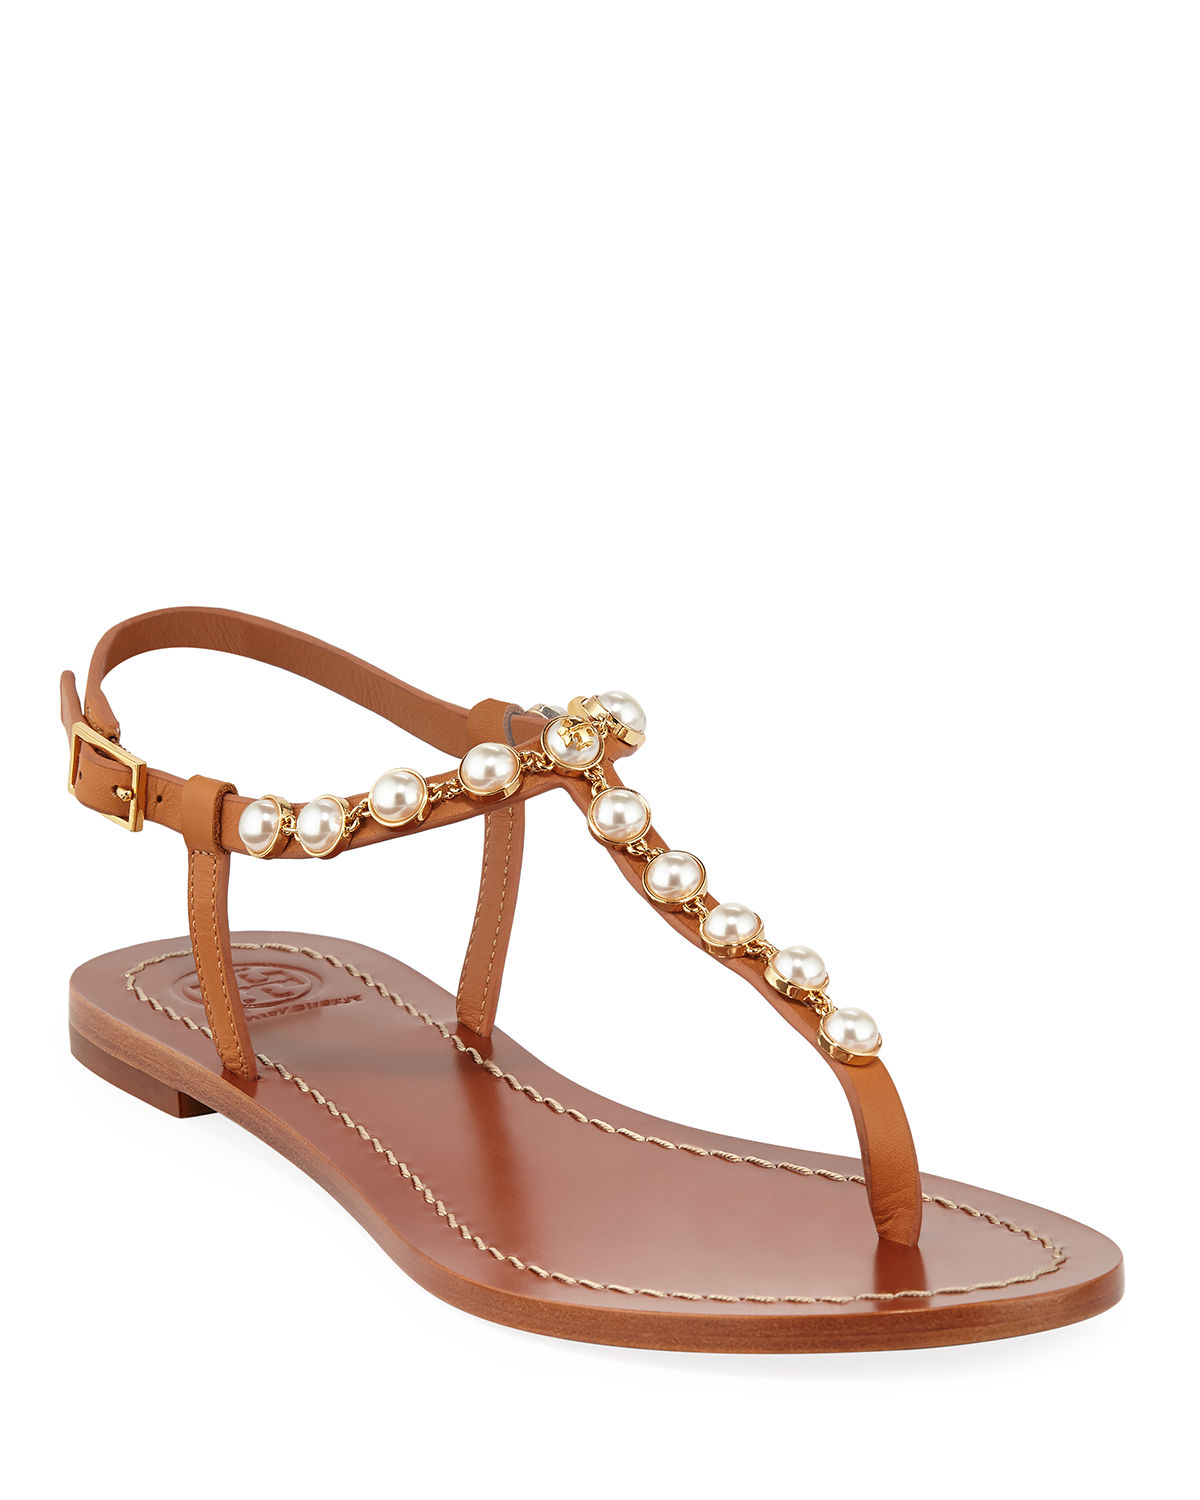 c6e733c8eff7 Tory Burch Emmy Pearly Beaded Flat Sandals